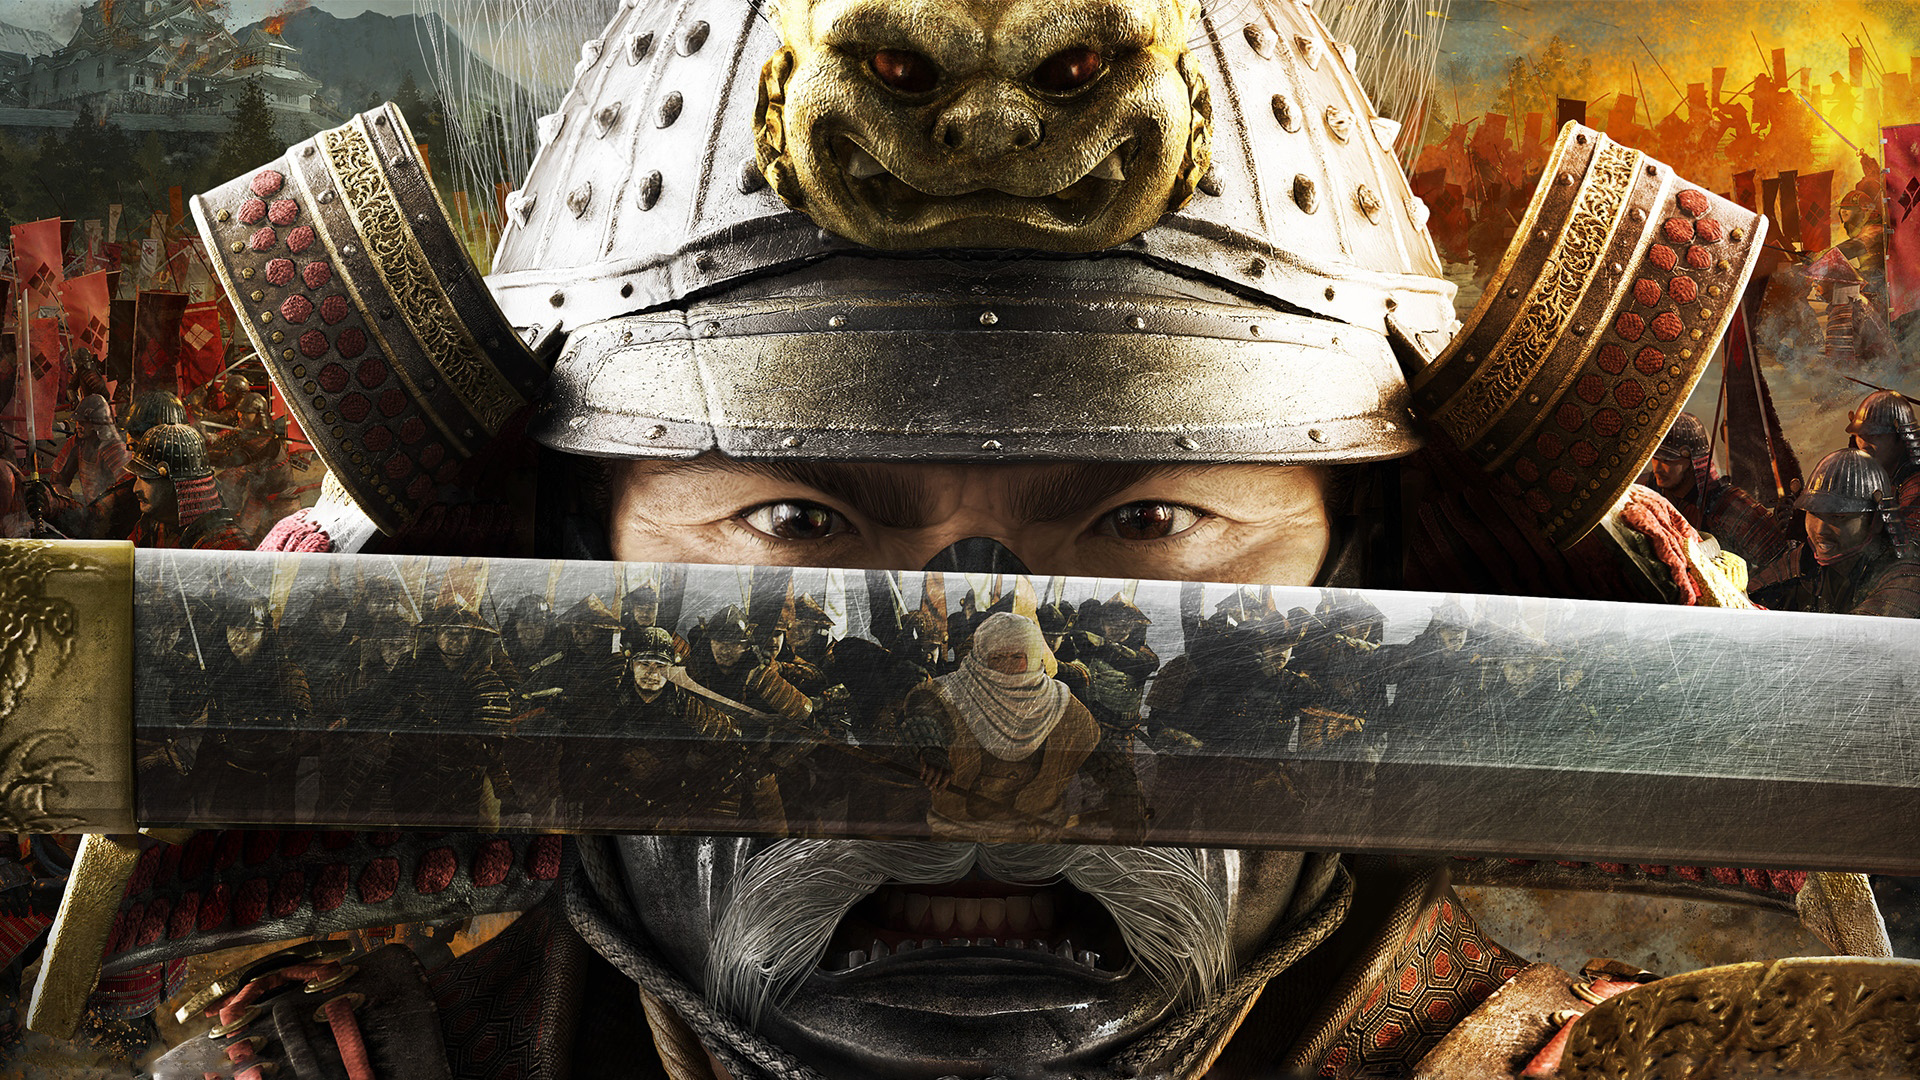 SHOGUN 2 TOTAL WAR WALLPAPER HD 1080P XBOX 360